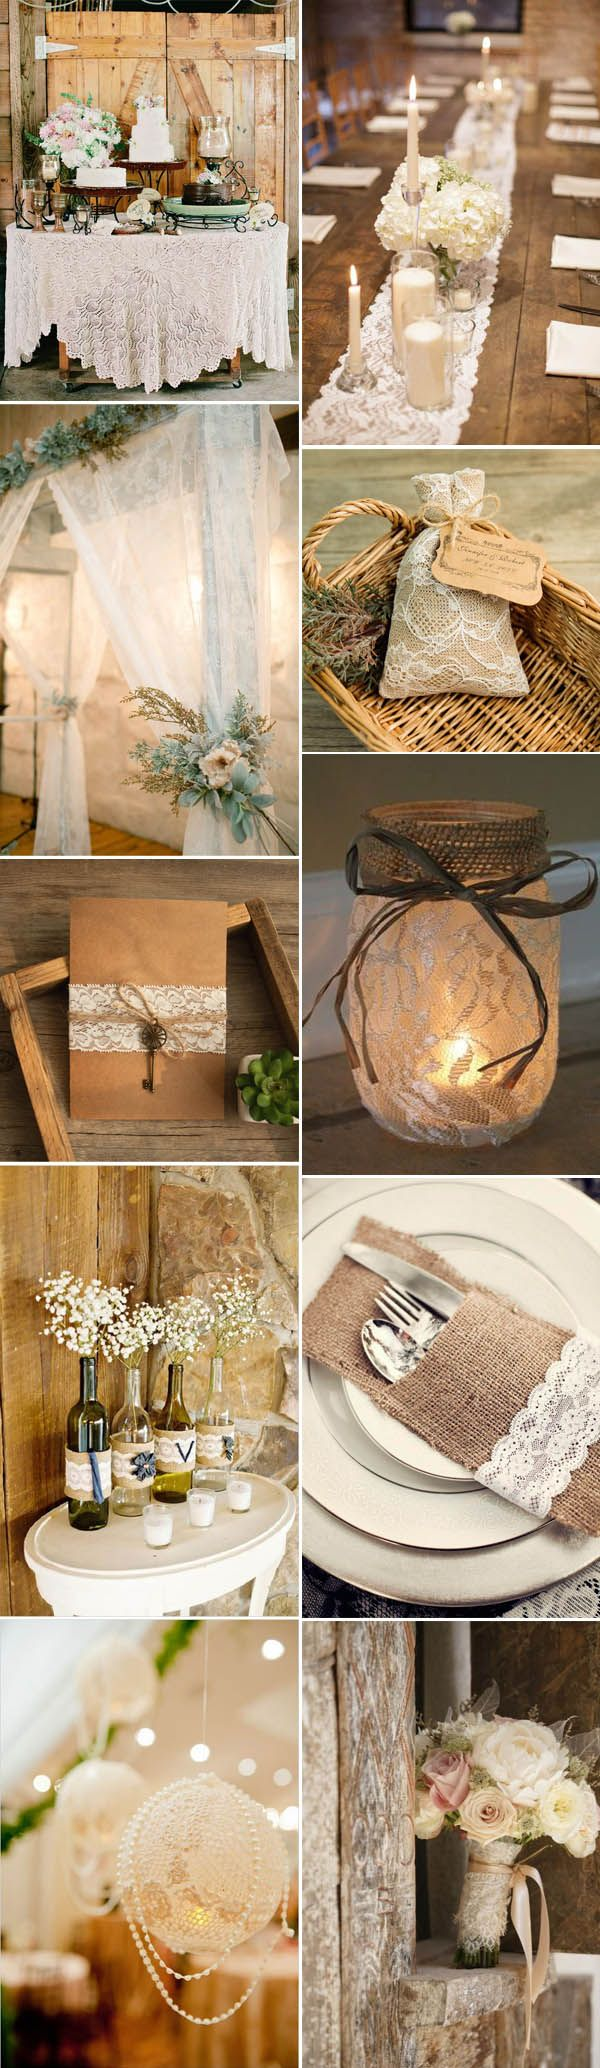 Jen, Another Mason jar example and we could easily make a lot of the other things!